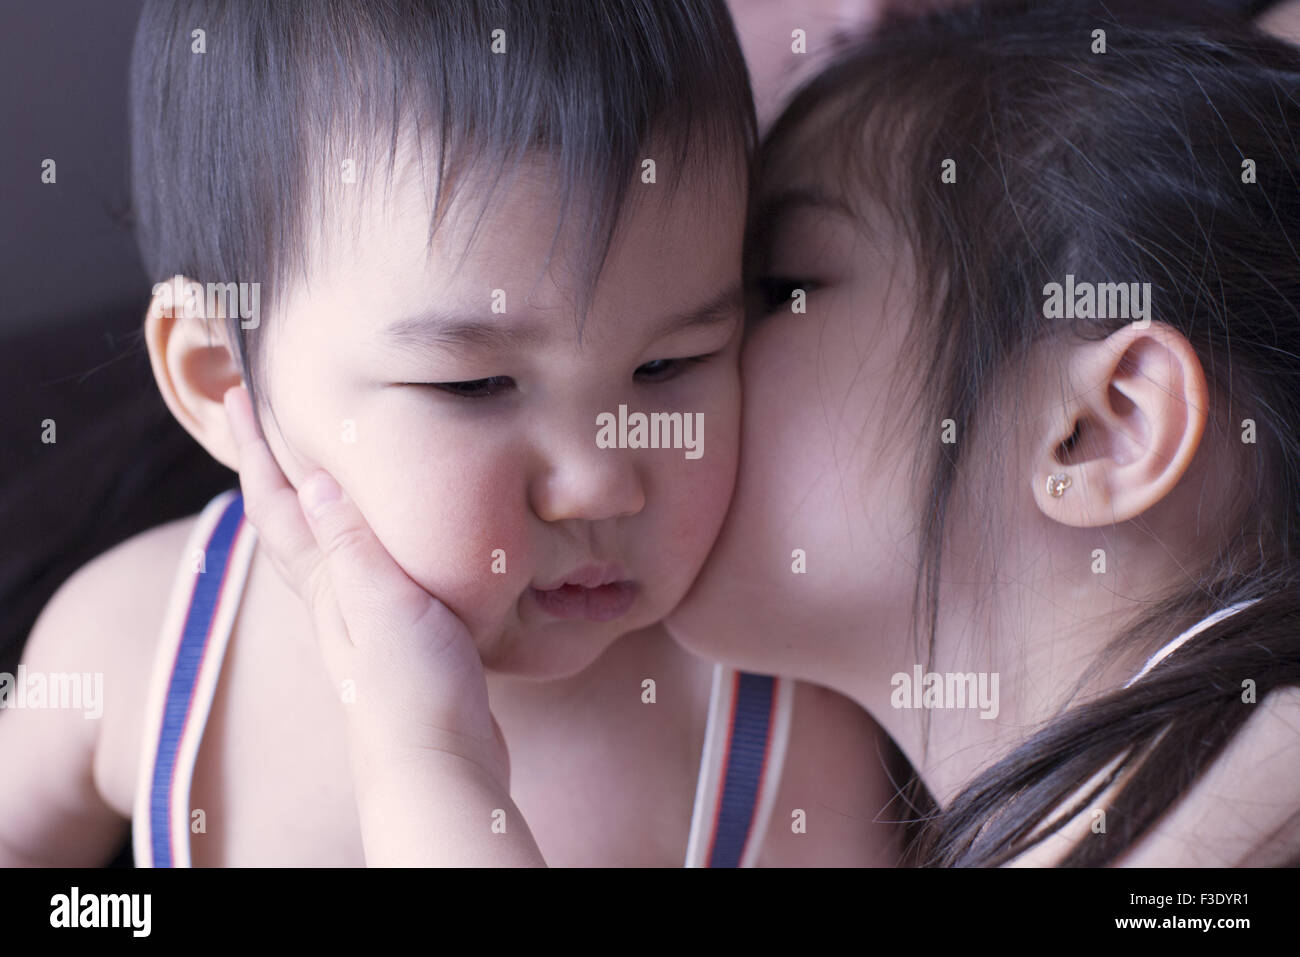 Little girl kissing baby brother on cheek - Stock Image